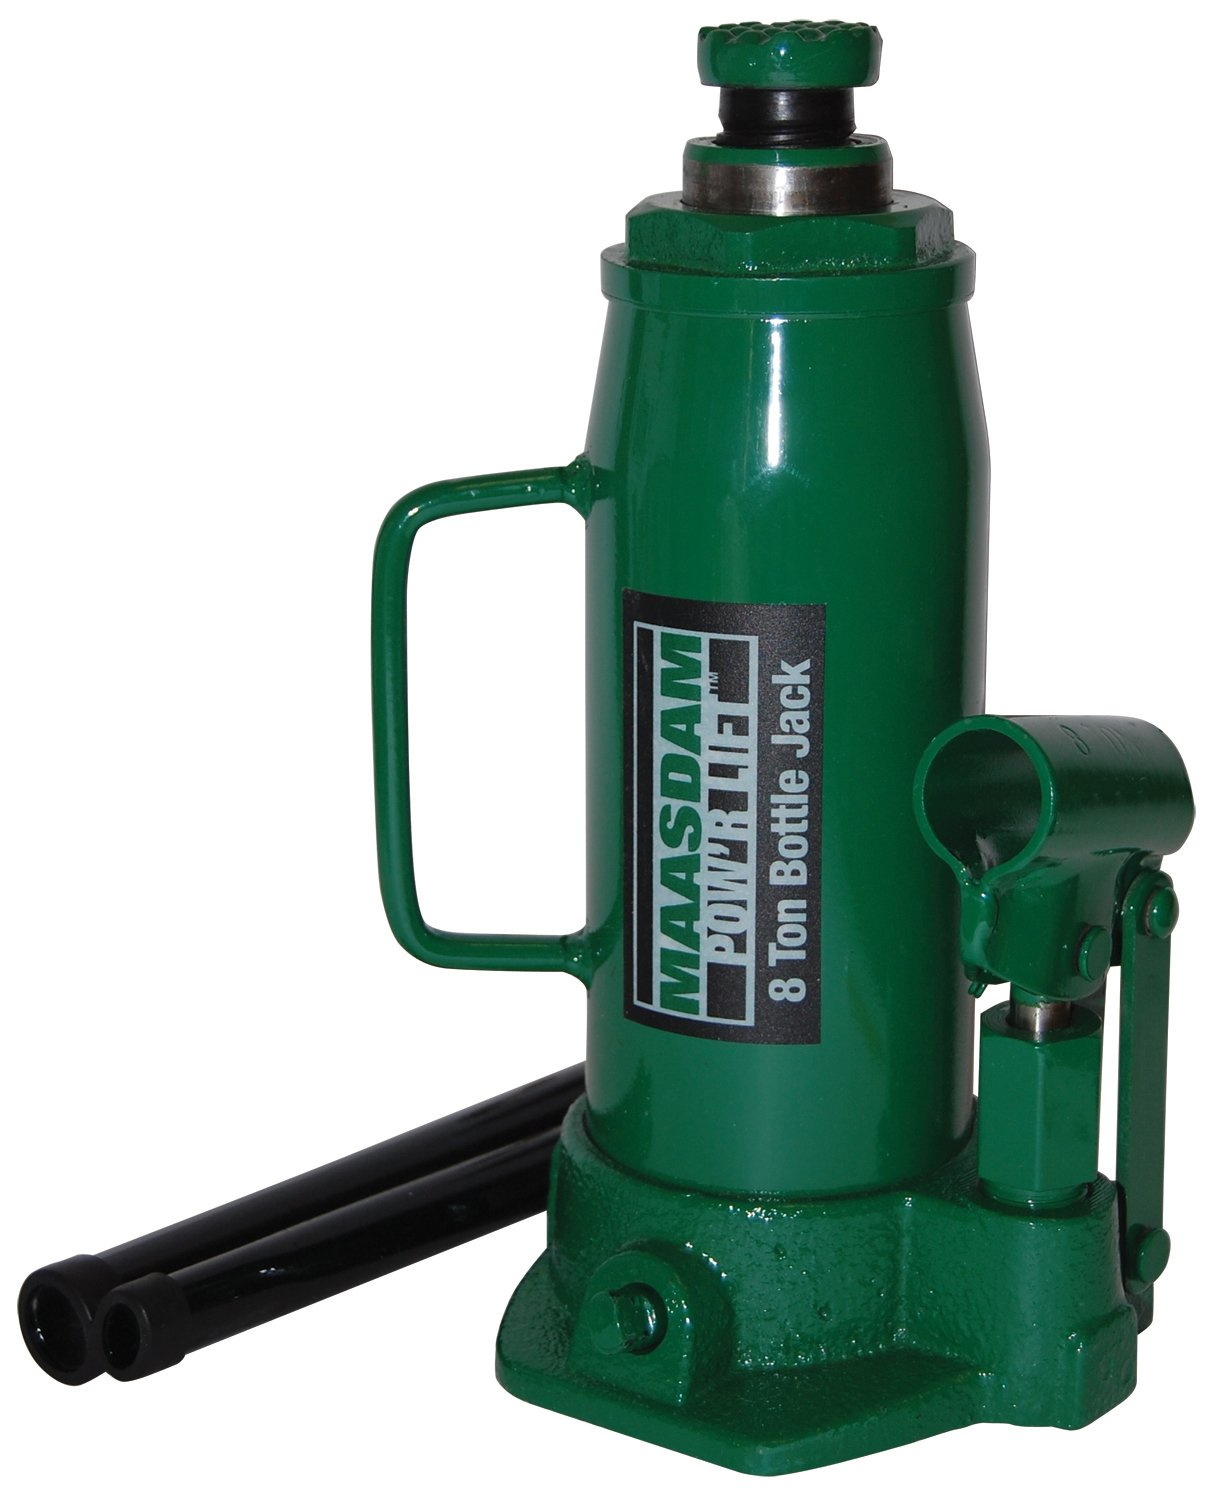 Maasdam MPL8B Bottle Jack, 8 Ton, Green